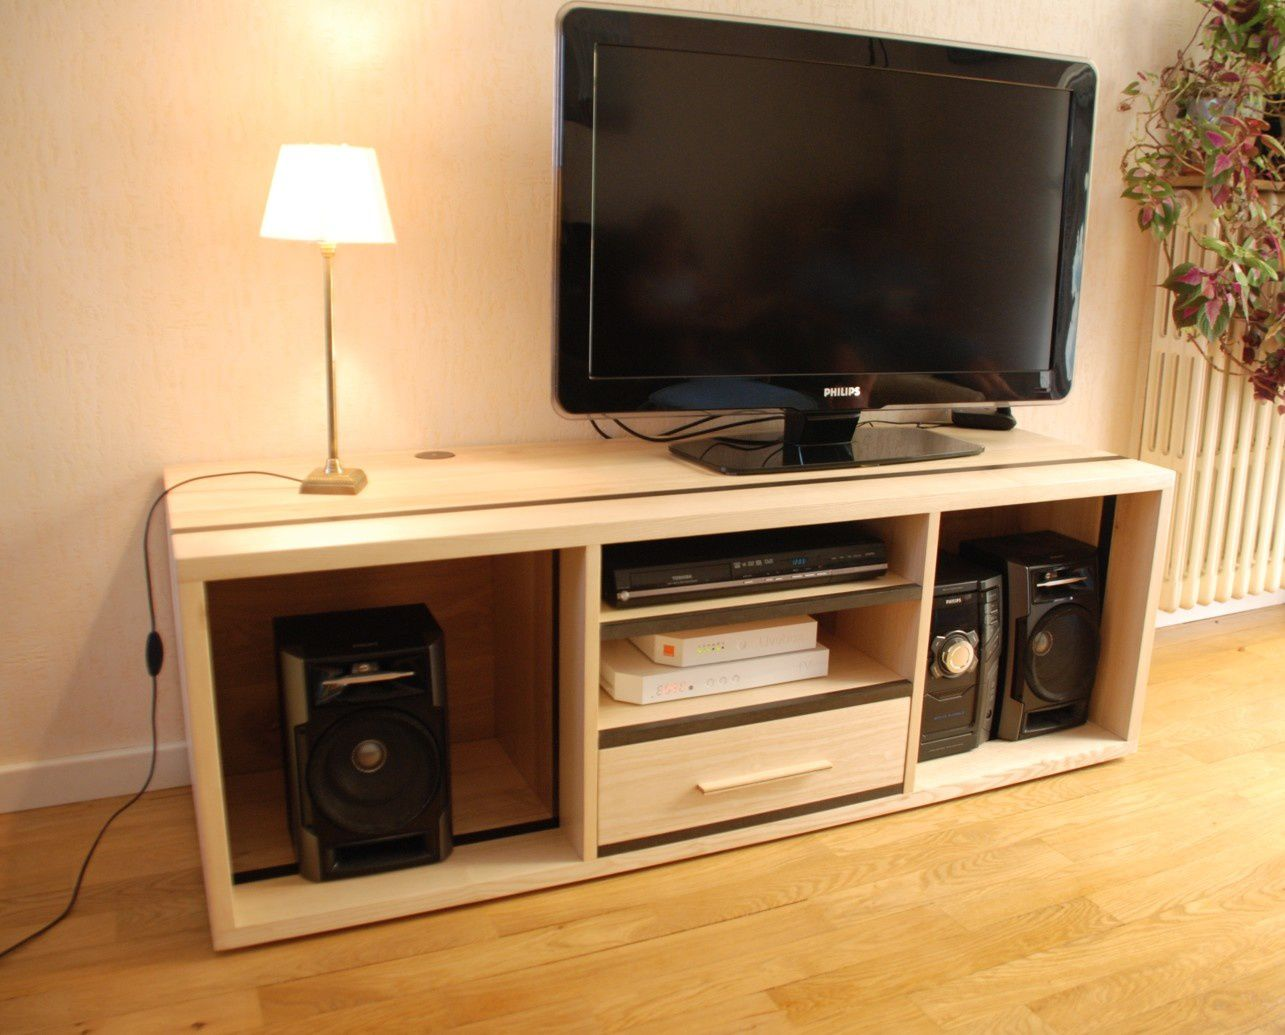 Album meuble tv hifi contemporain atelier pourquoi pas for Meuble tv but